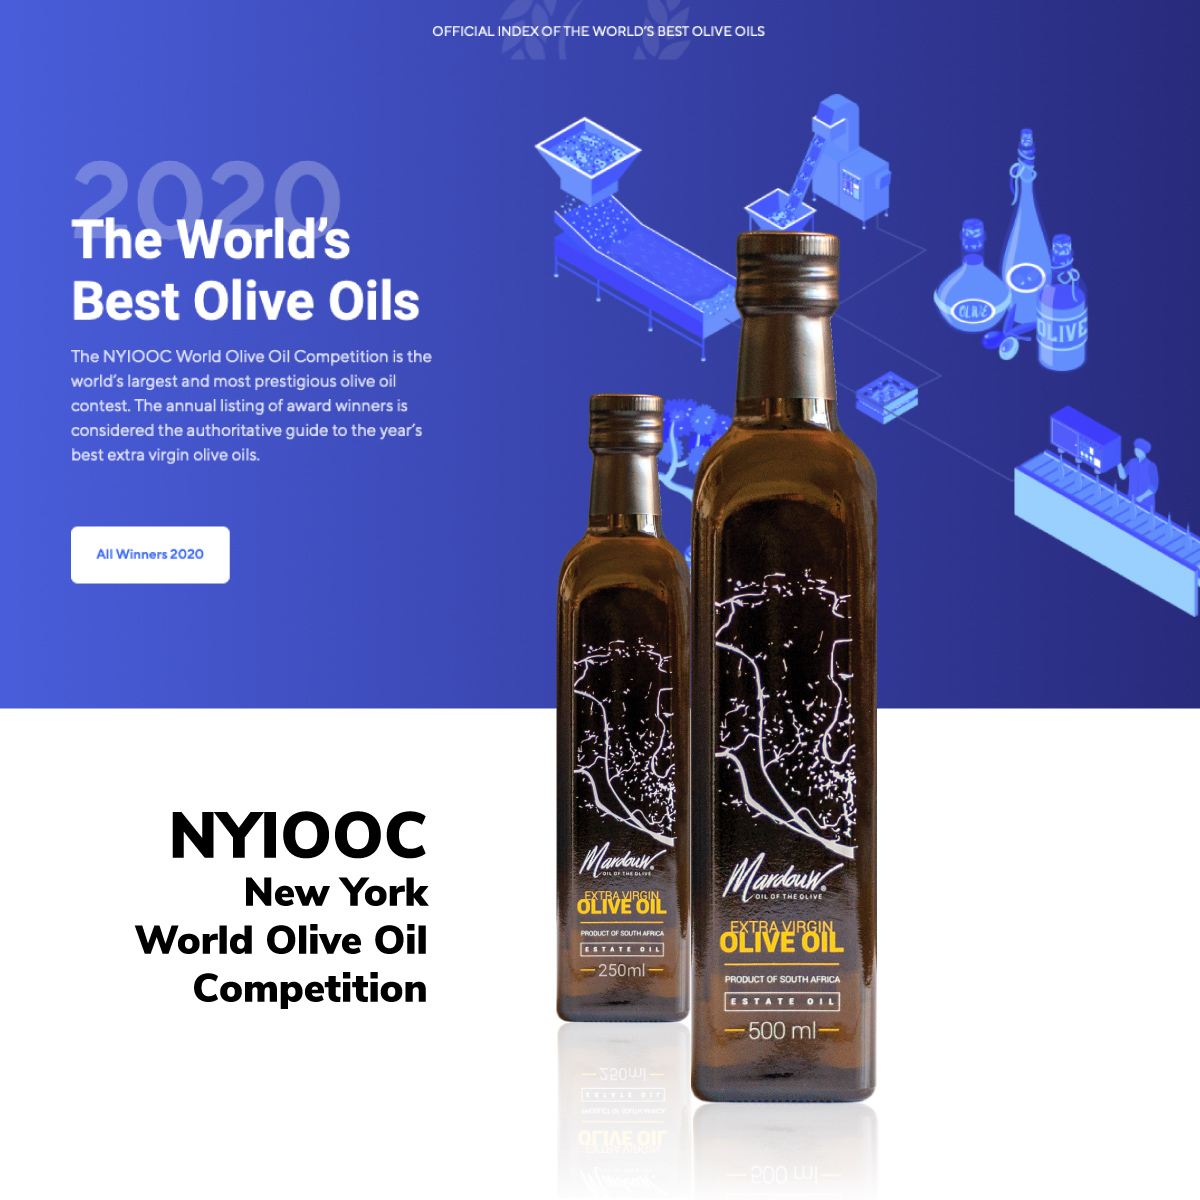 New York International World Olive Oil Competition